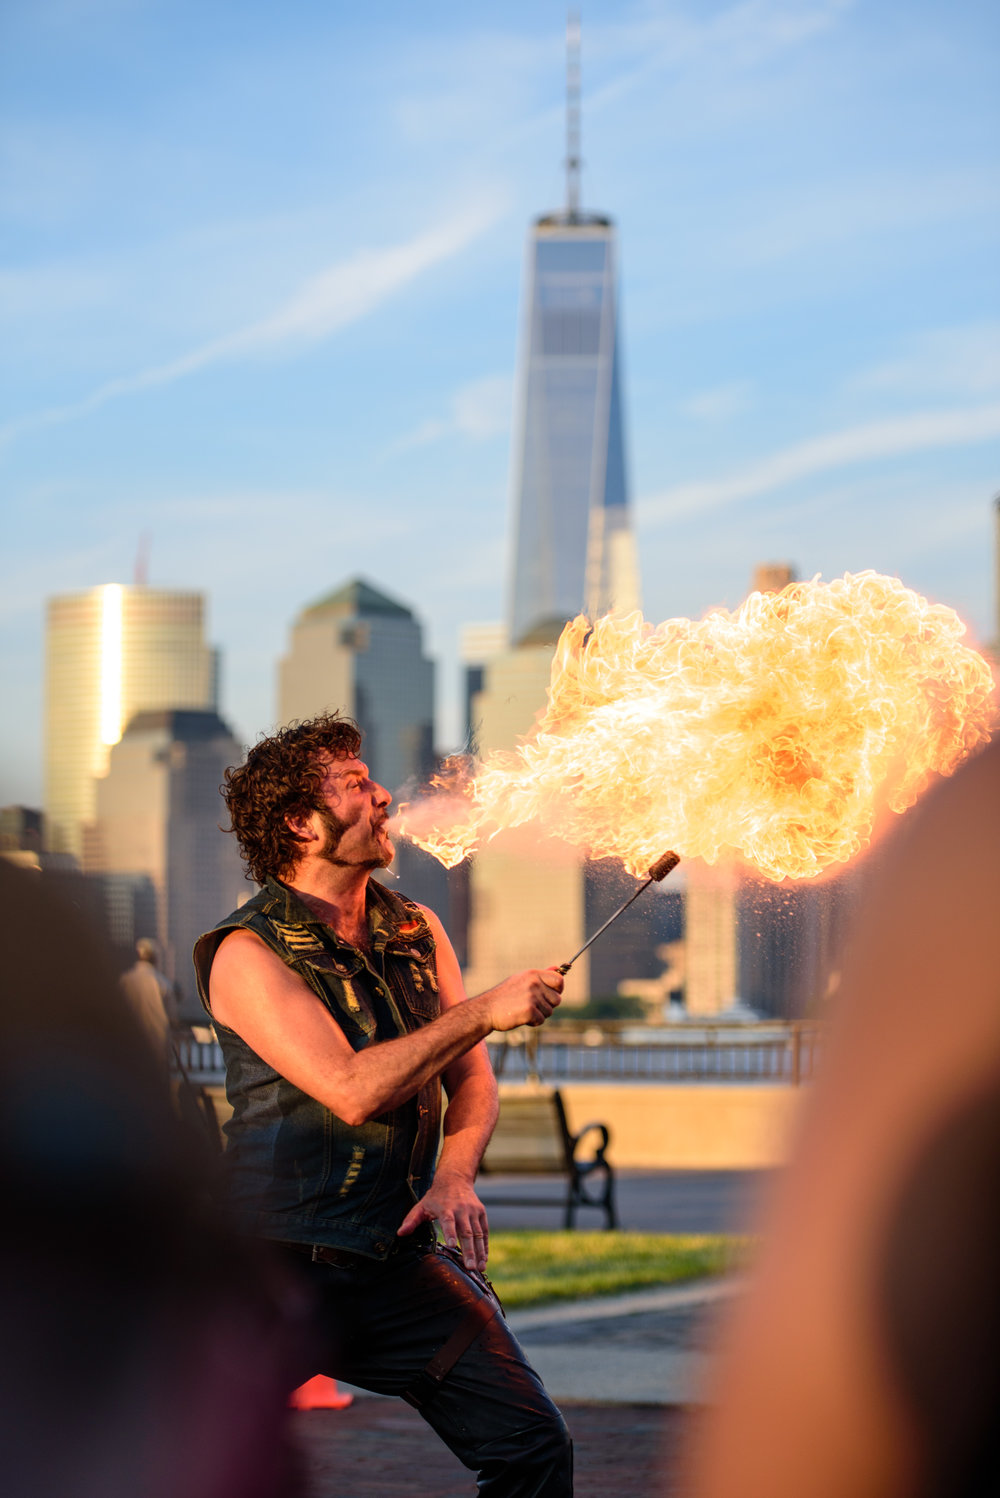 The skyline firebreather [June 11]